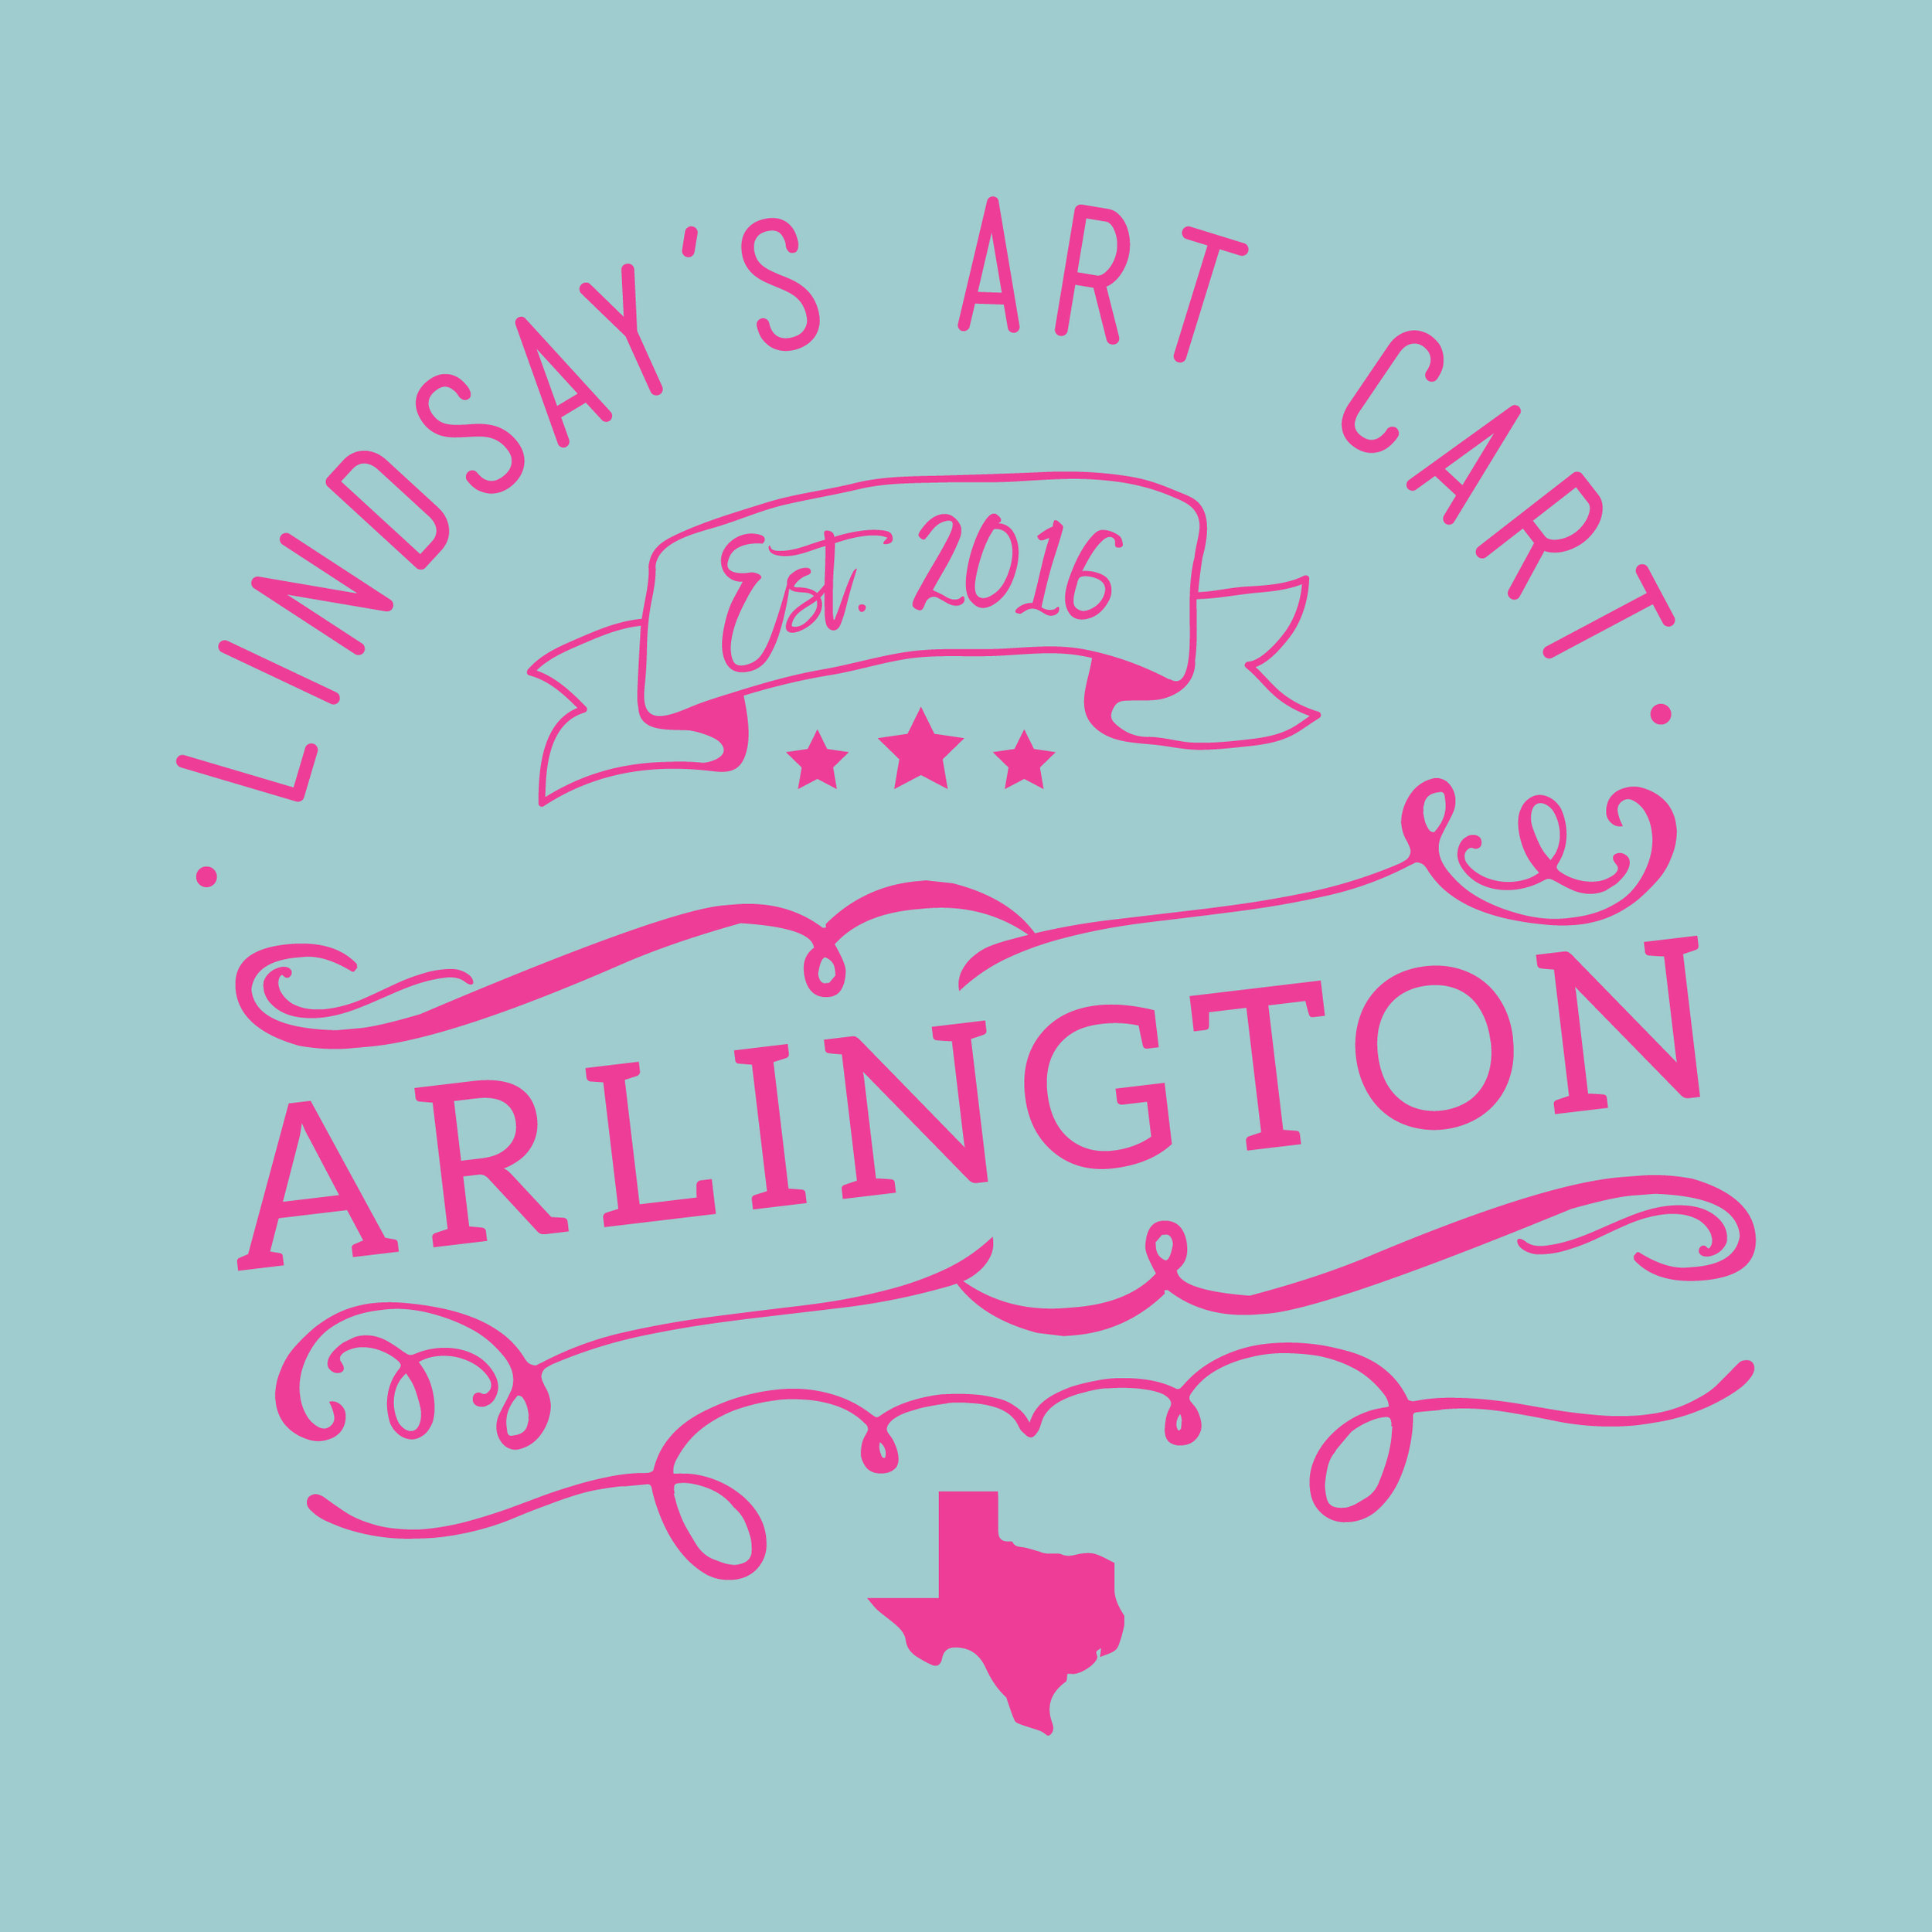 Lindsays-Art-Cart-Tshirt-Mint.jpg